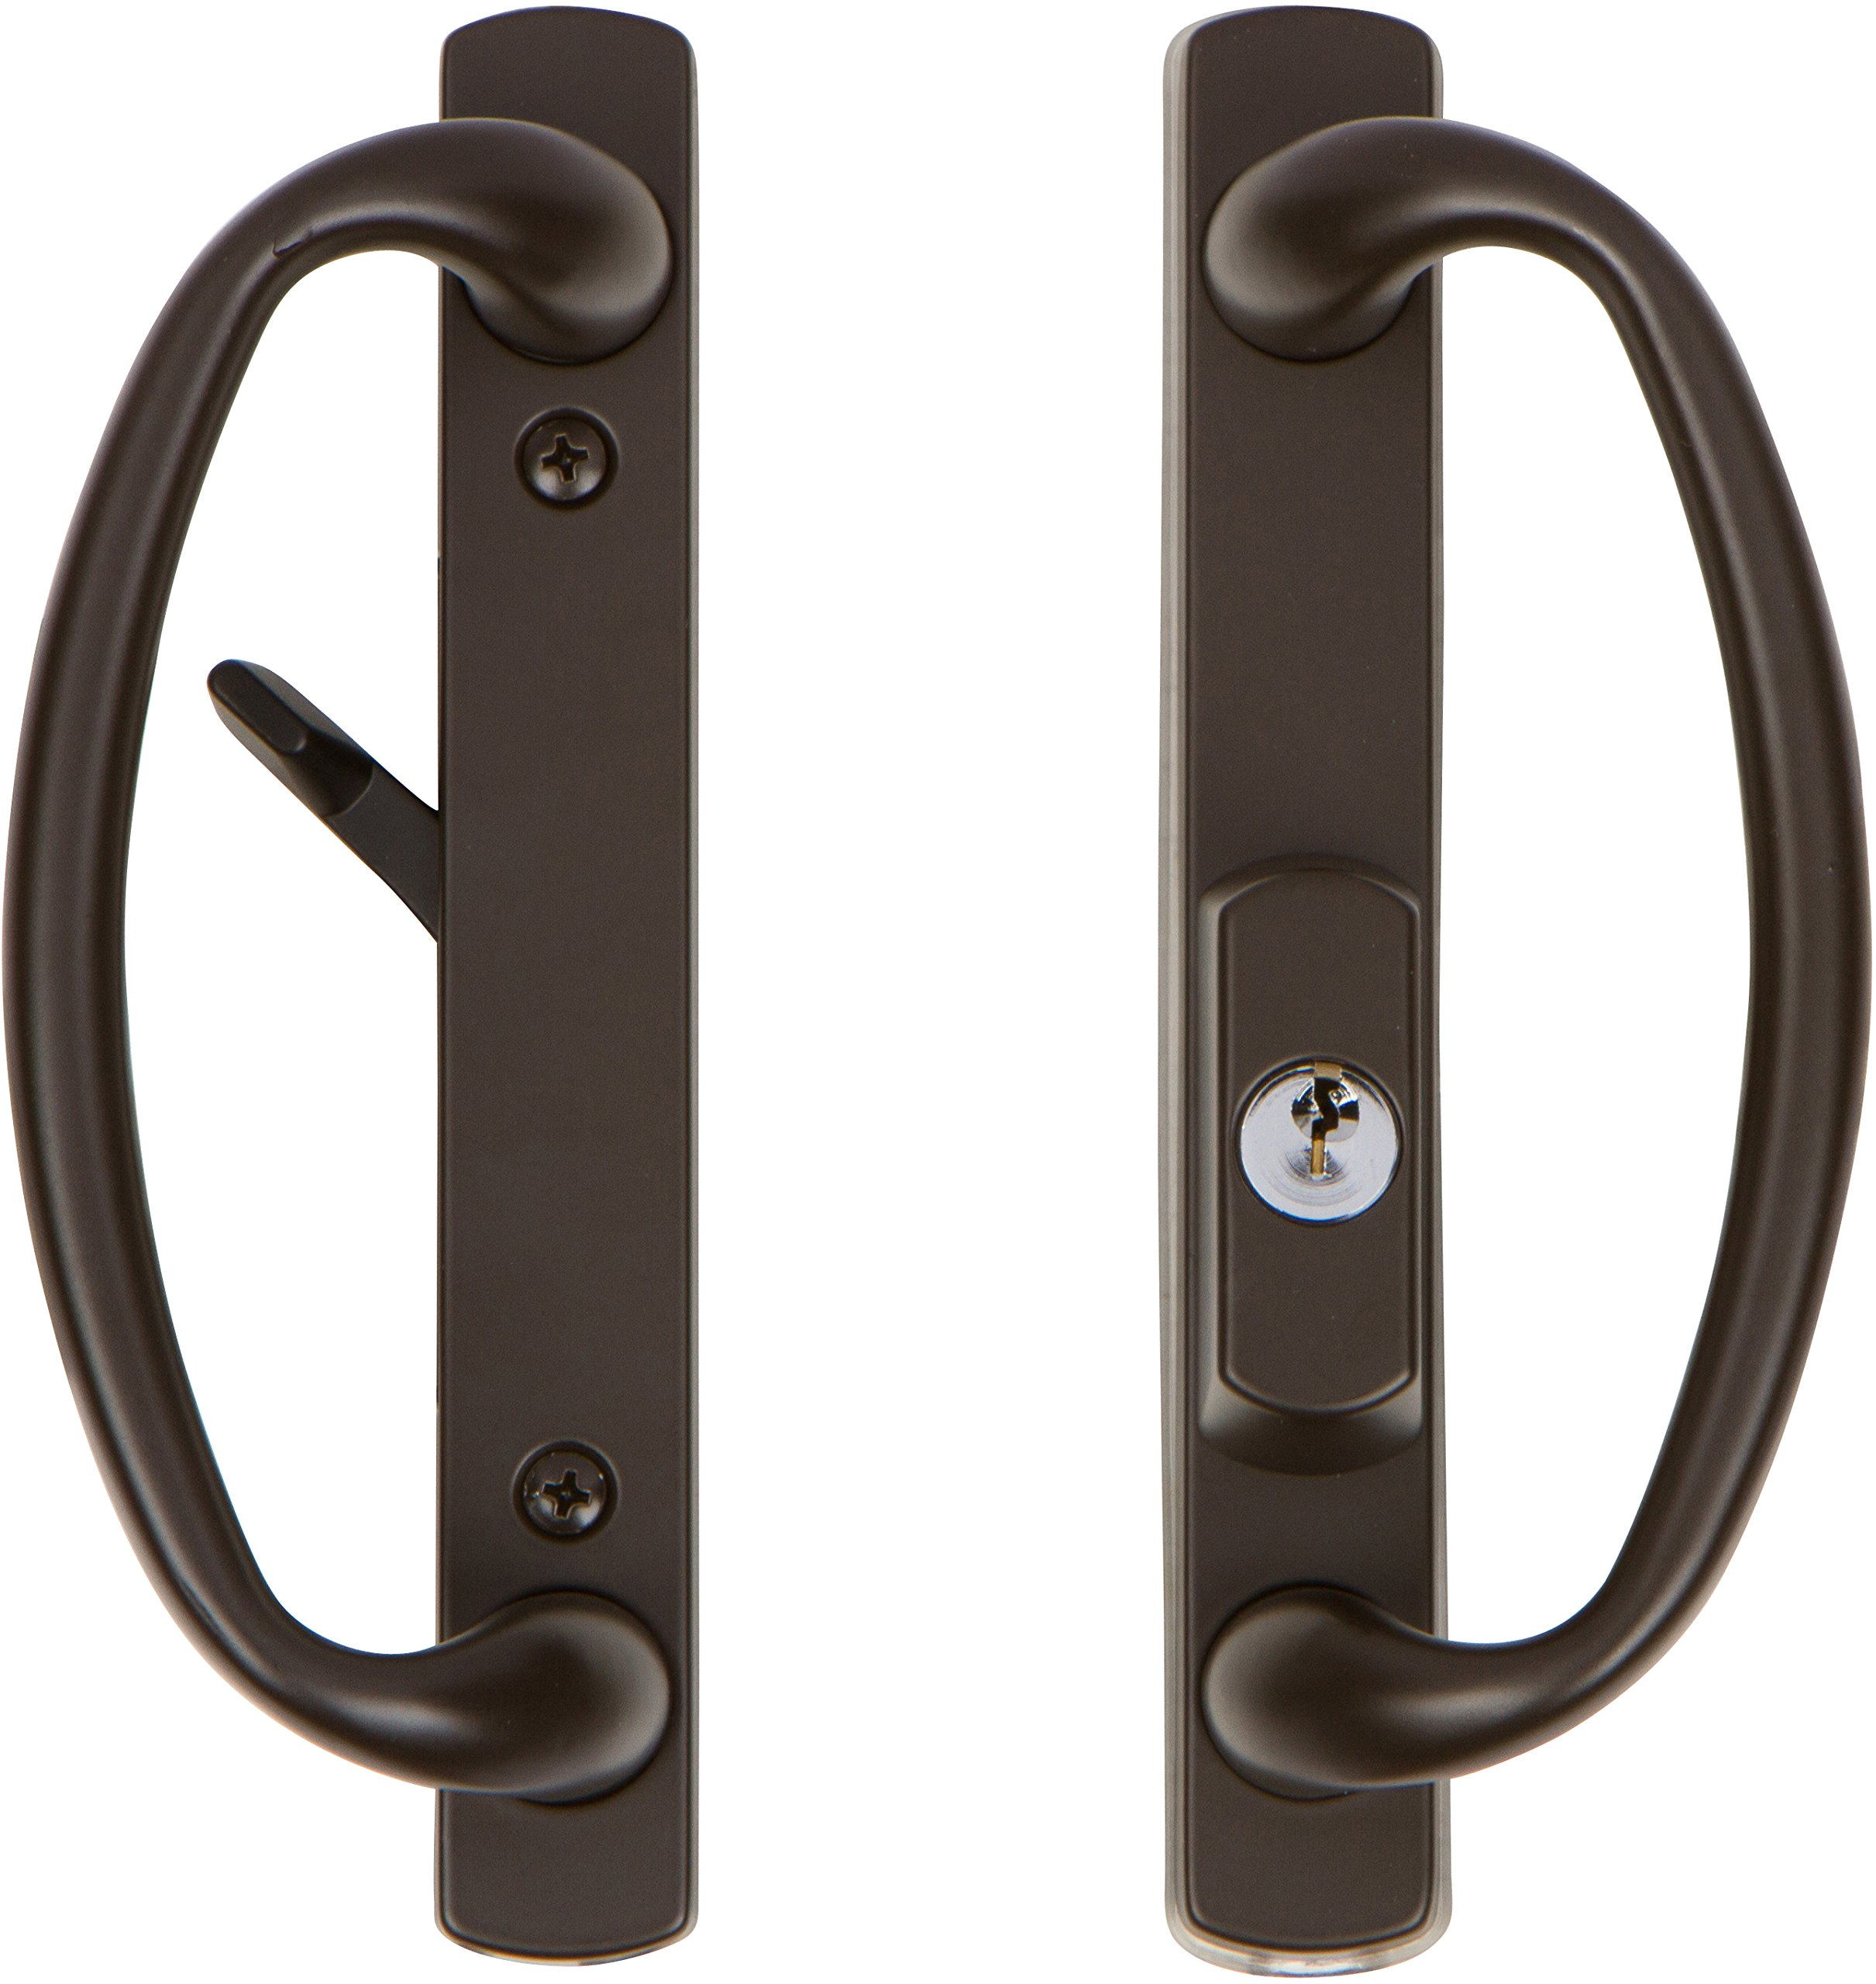 Rockwell Charlotte Offset Keylocking Sliding Door Handle with 3/4'' Offset Keylock in Tuscan Bronze only fits 1-3/4 inch thick doors with a 4 hole bore on the face of the door.